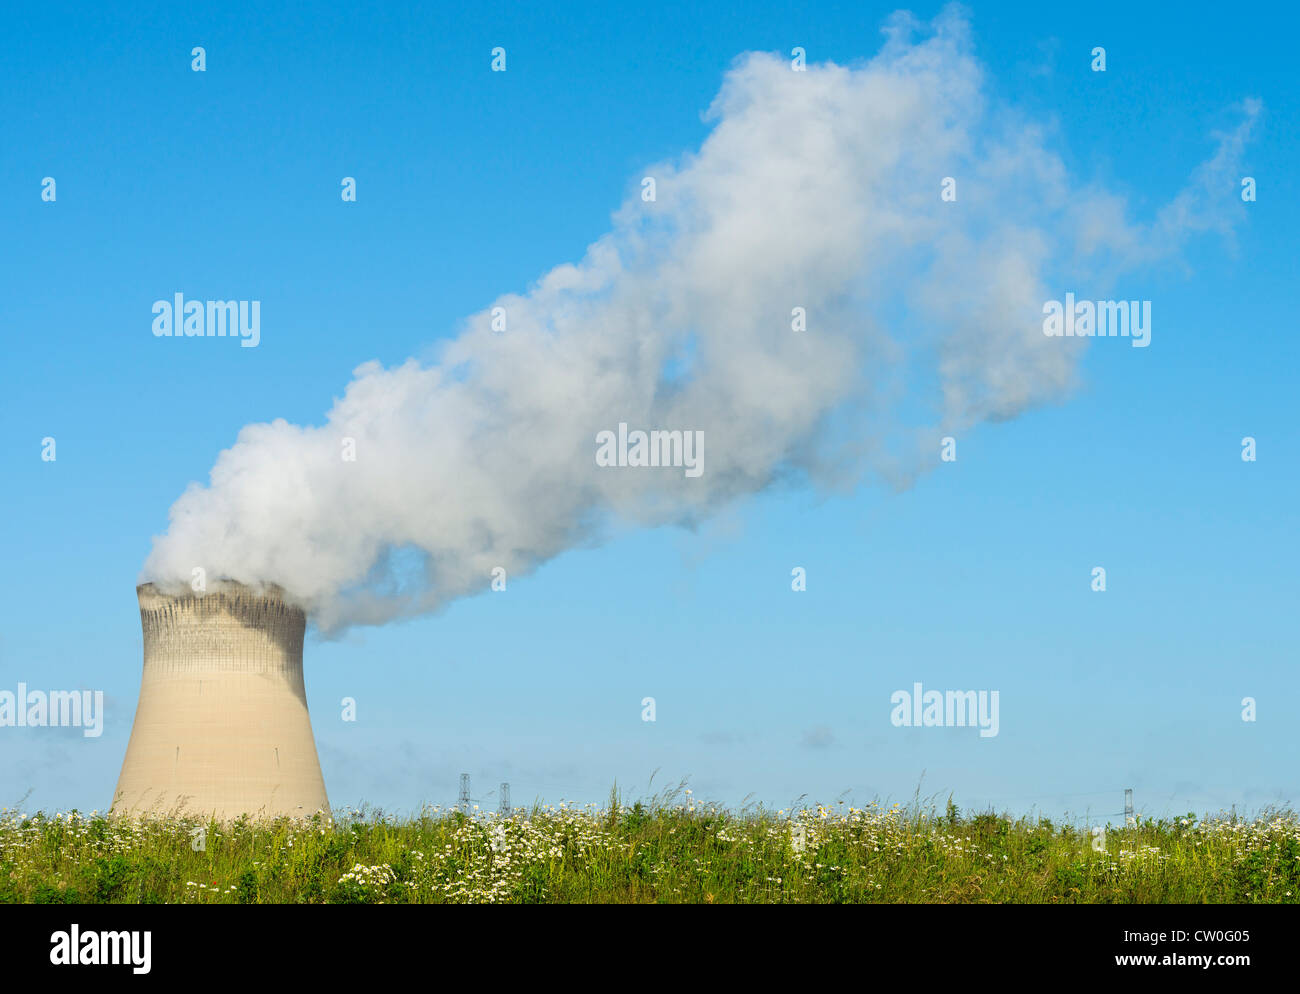 Smokestack of nuclear power plant Stock Photo